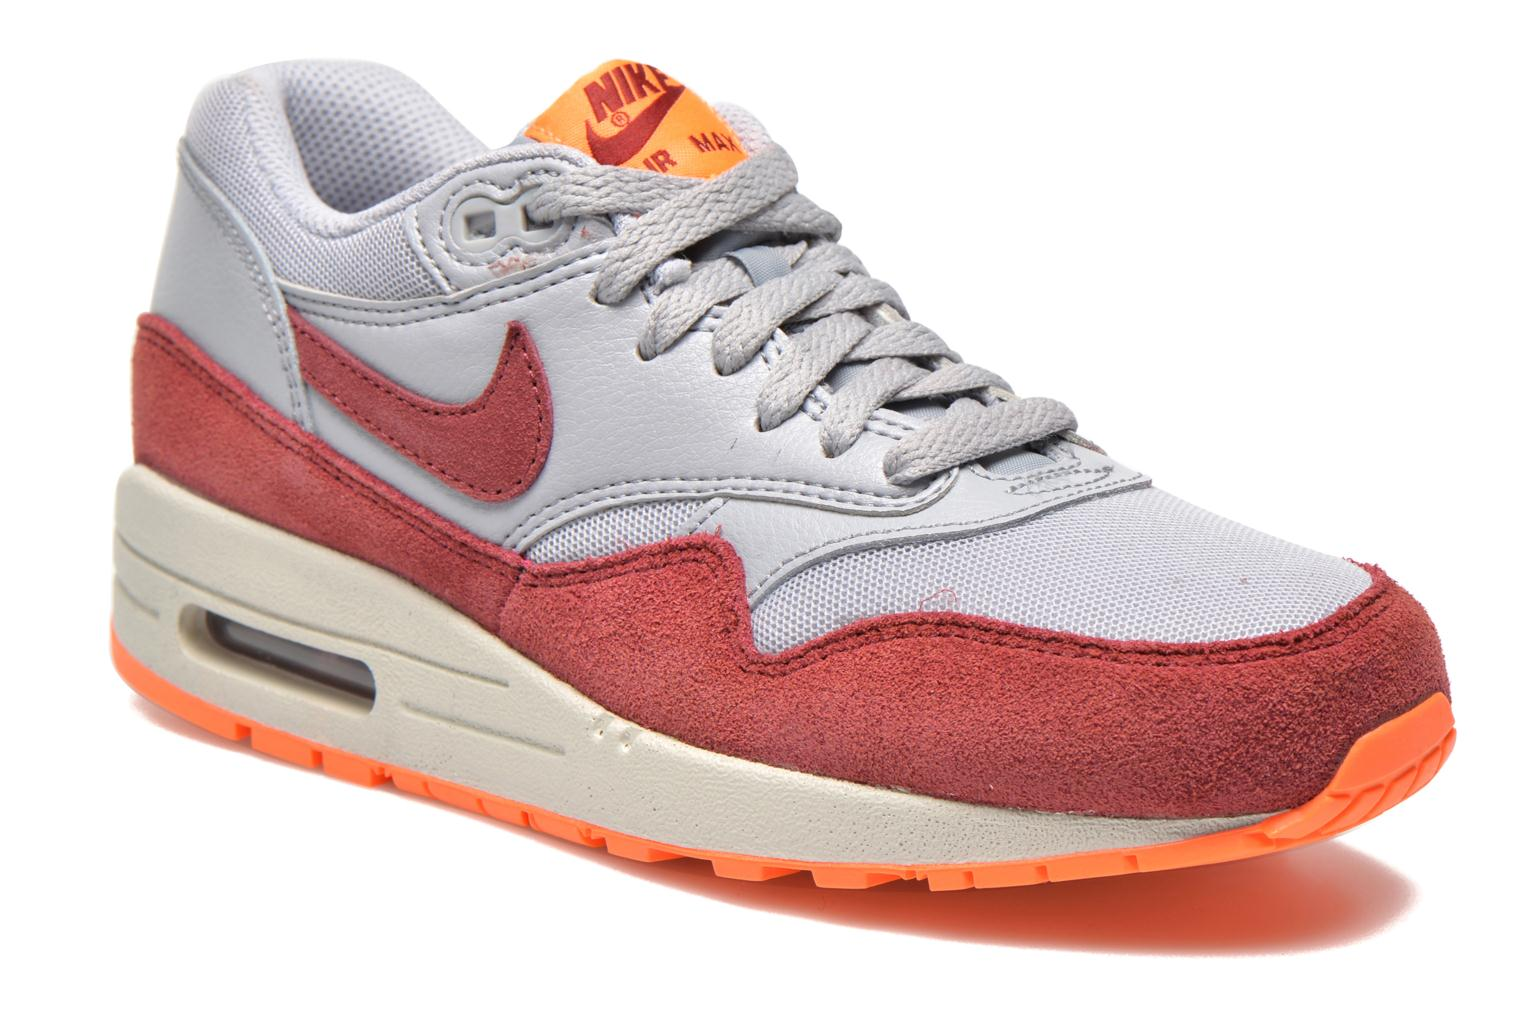 Wmns Air Max 1 Essential Wlf Gry/Tm Rd-Ttl Orng-Smmt Wh